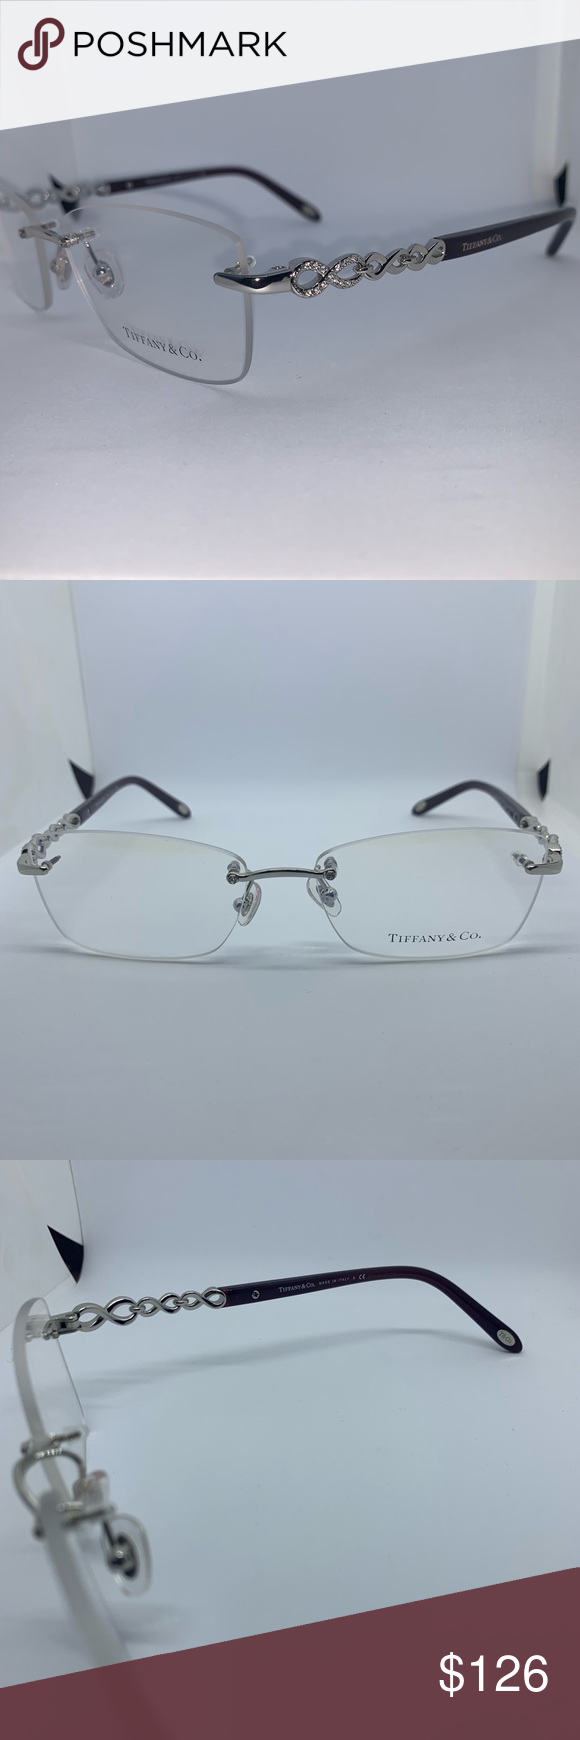 8cd947e3e327 Tiffany 1117B Clear Silver Women s Eyeglasses 100% Authentic Tiffany 1117B  Clear Silver Women s Eyeglasses Frame